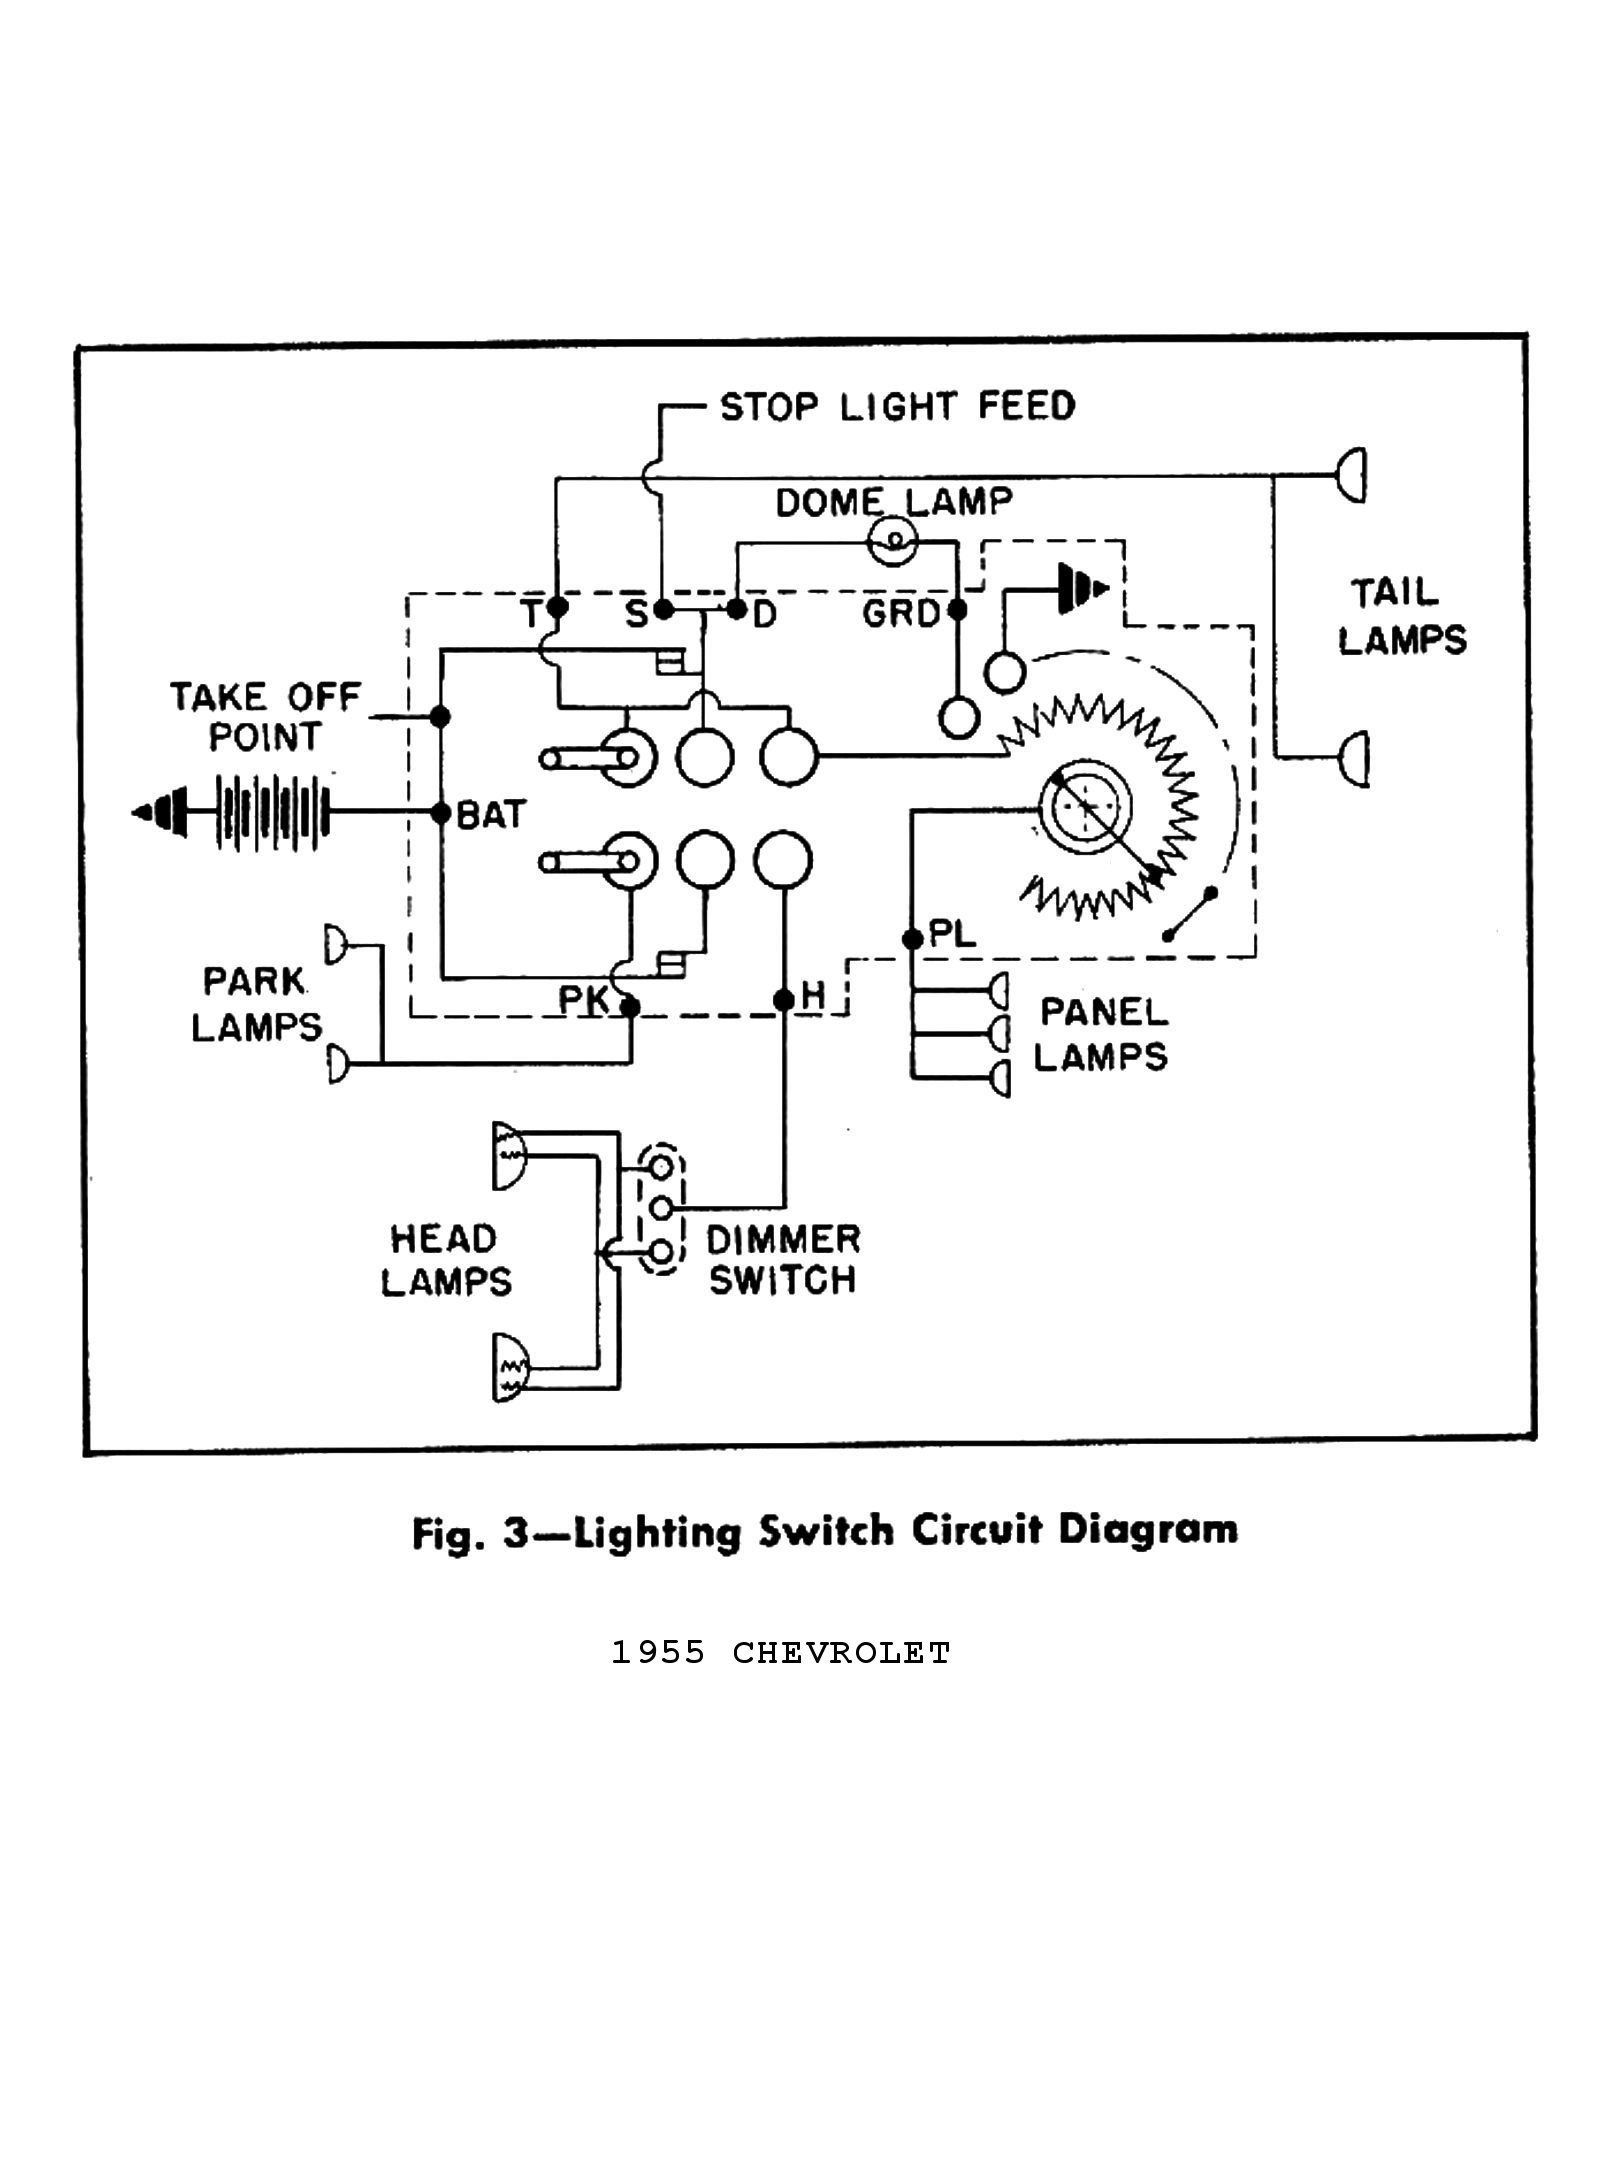 Superb 1951 Ford Headlight Switch Wiring Wiring Diagram Ranpur Mohammedshrine Wiring Digital Resources Ranpurmohammedshrineorg